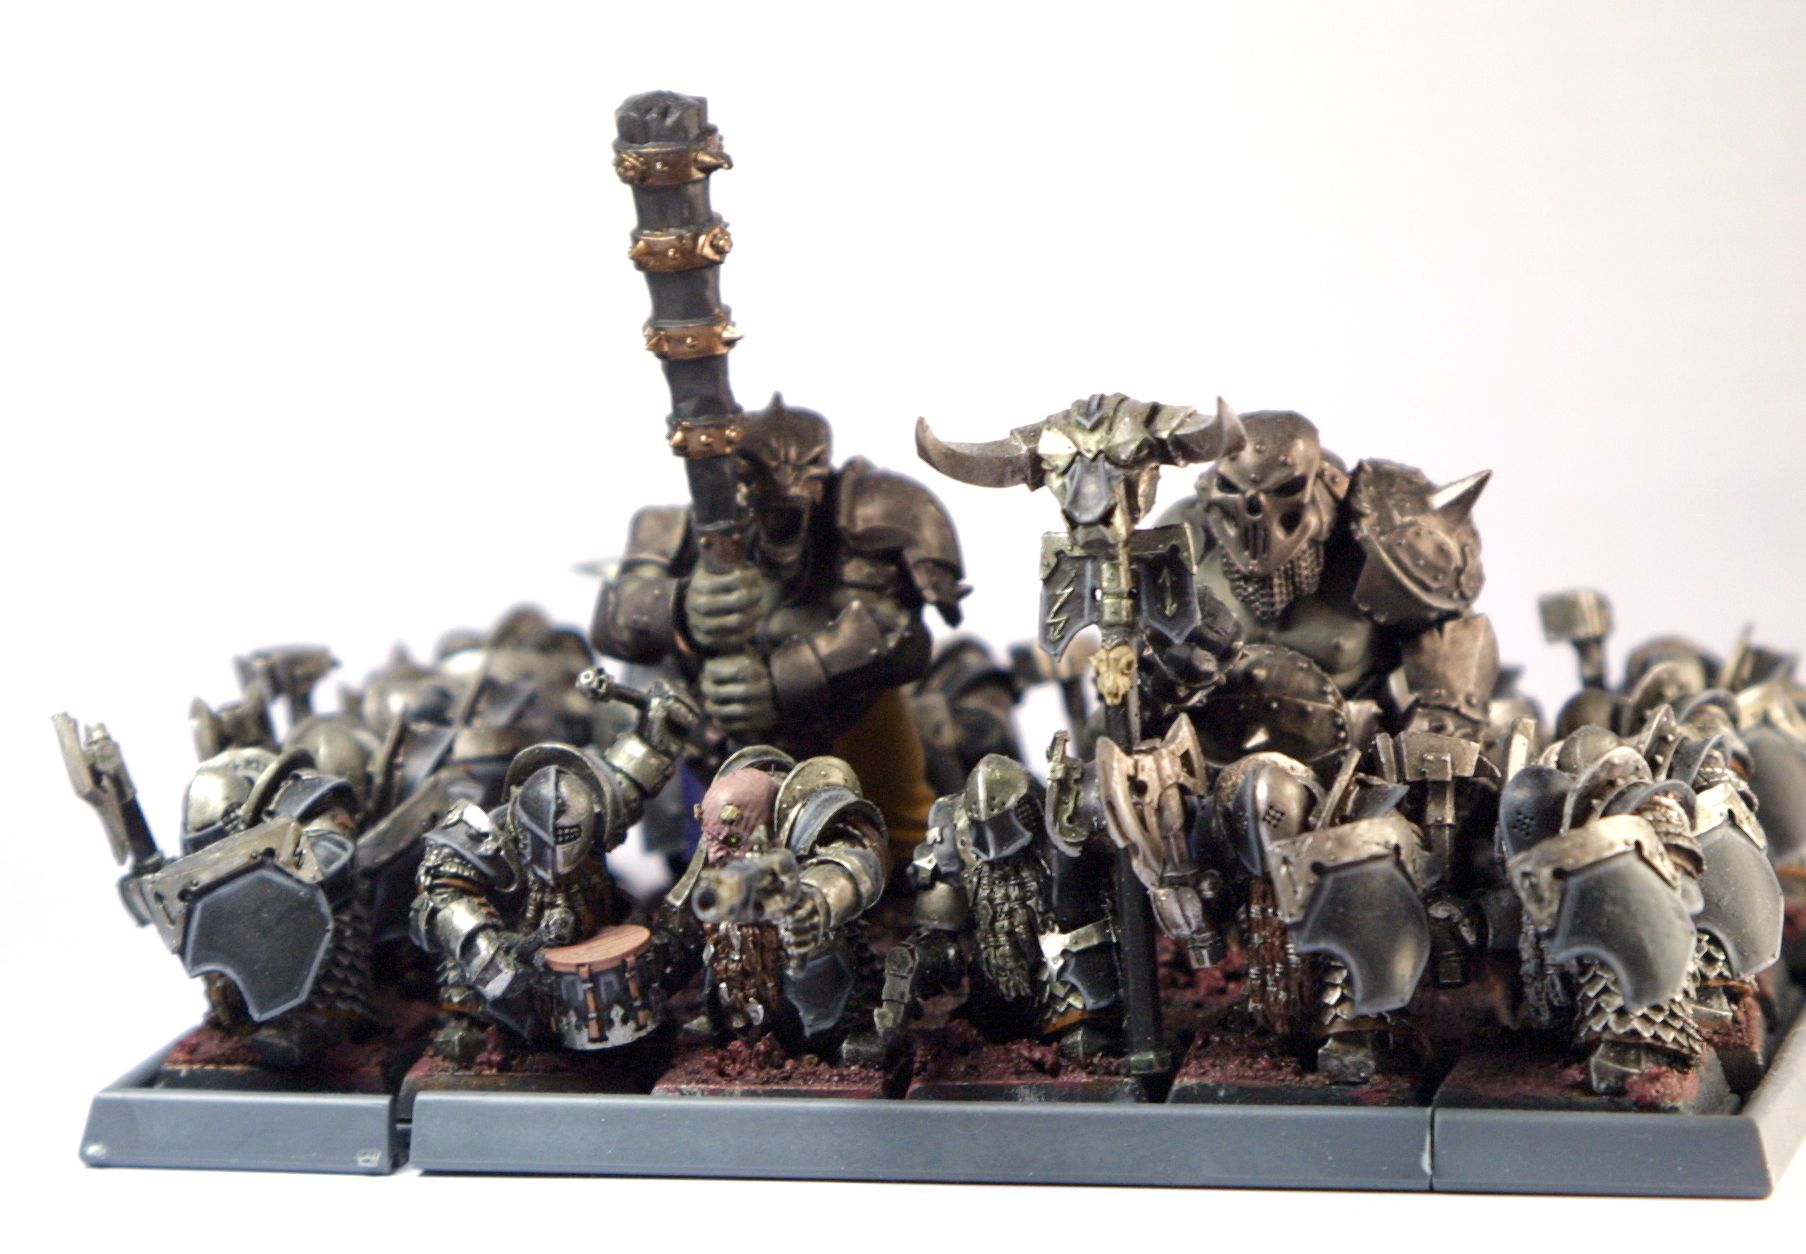 Chaos Dwarves from Warhammer fantasy